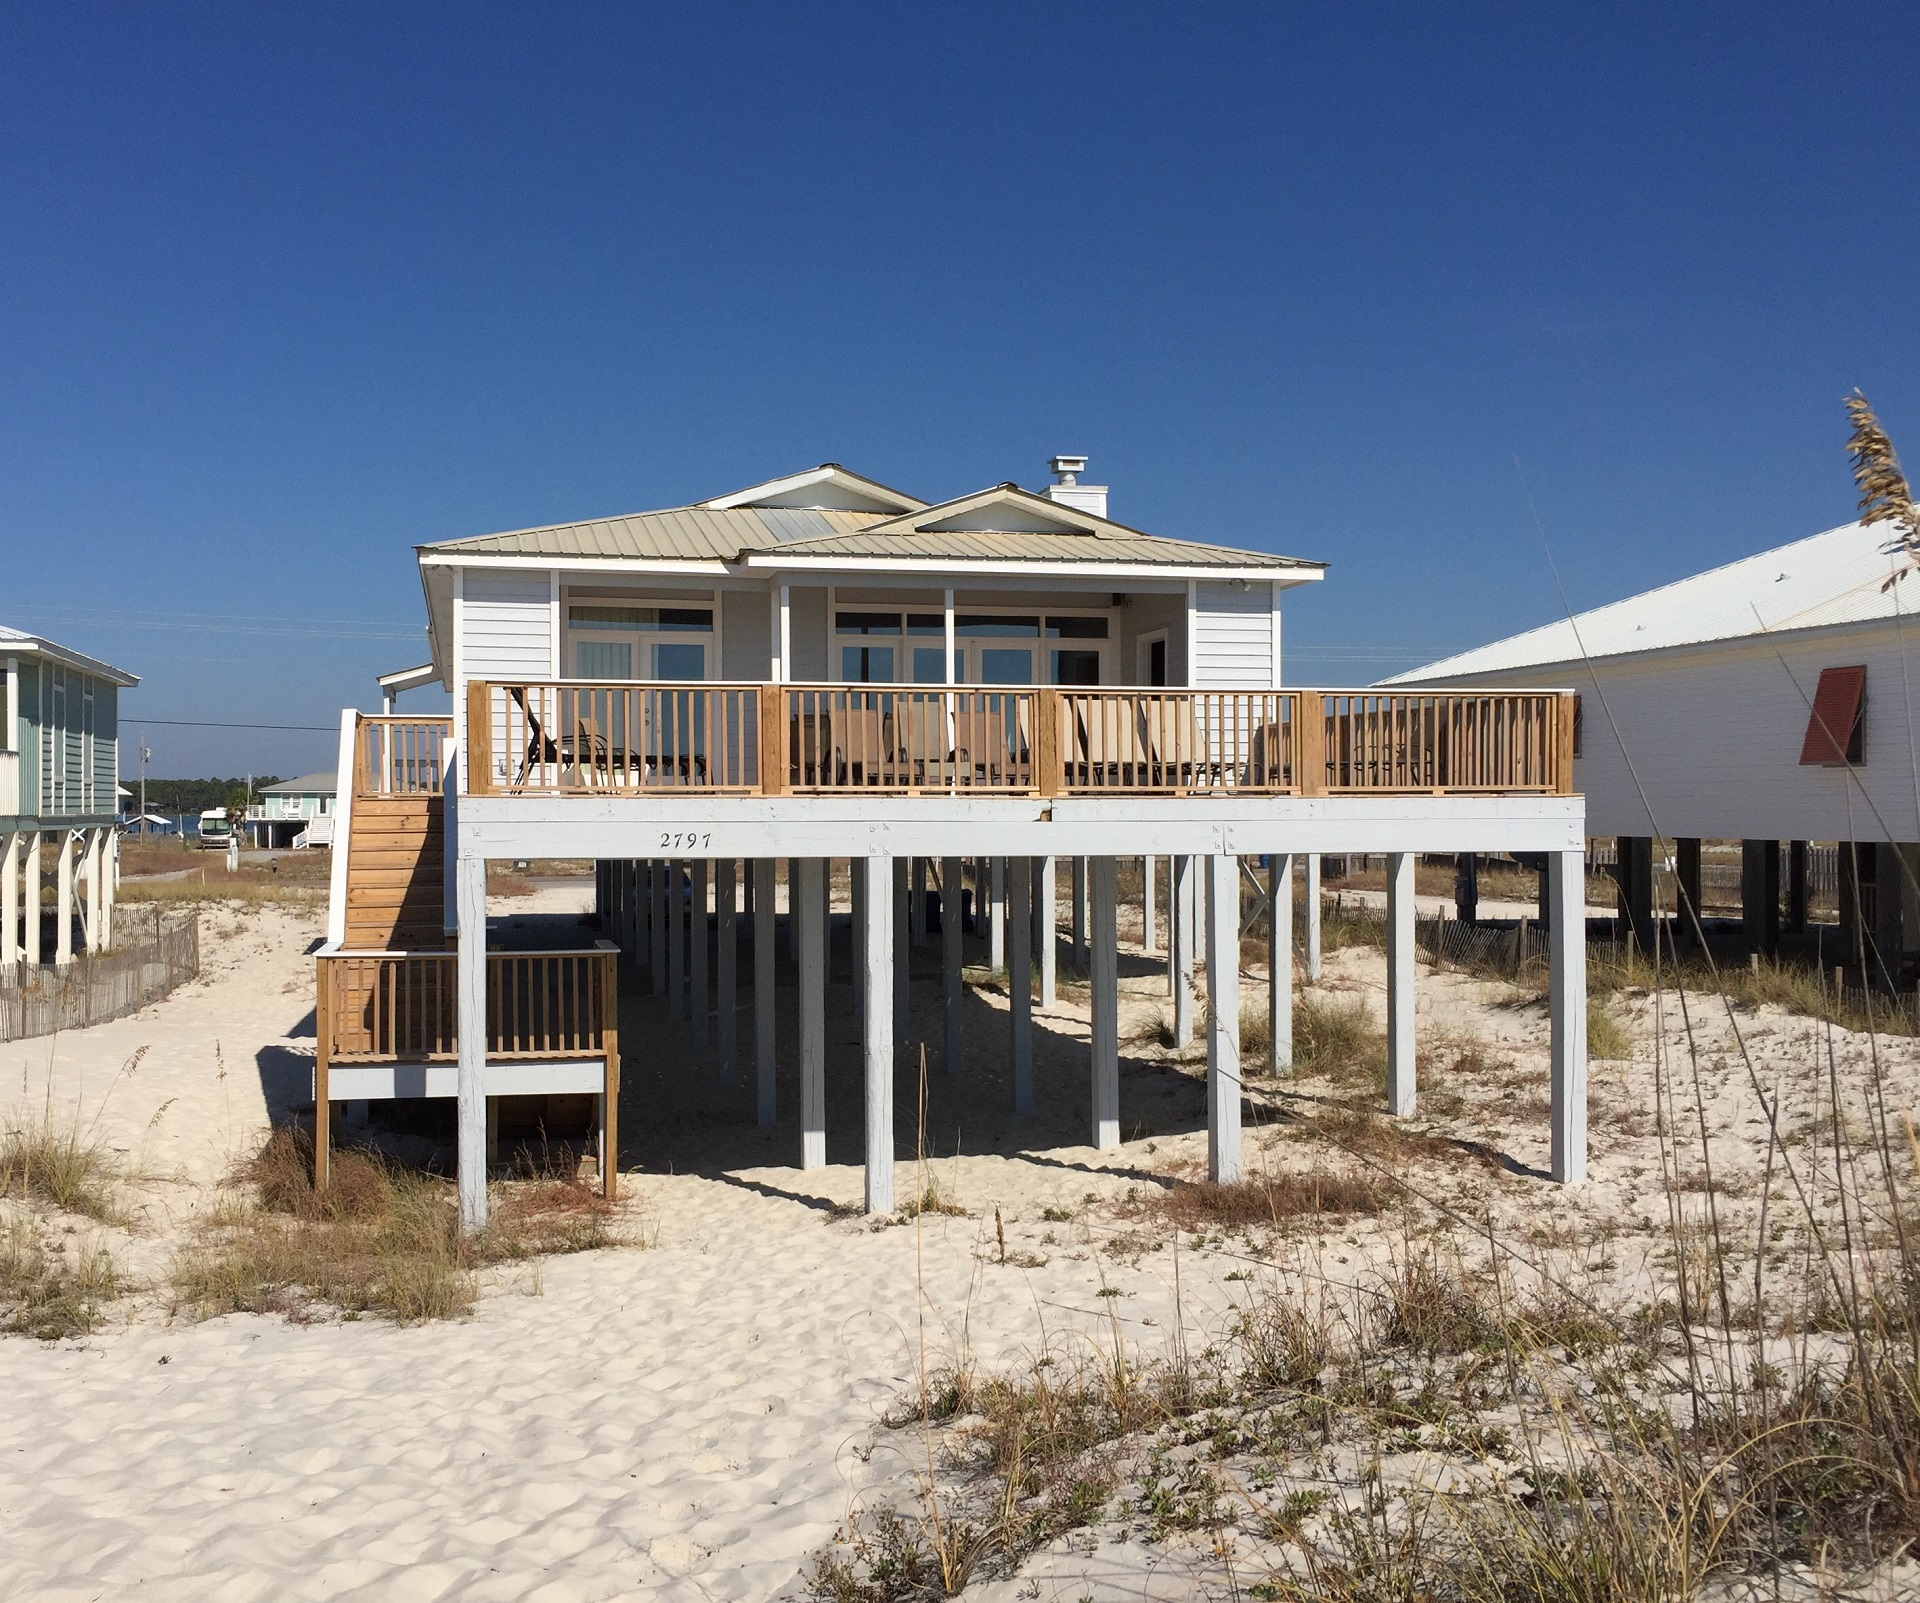 Rent a beach house in June only 3 night minimum  Gulf